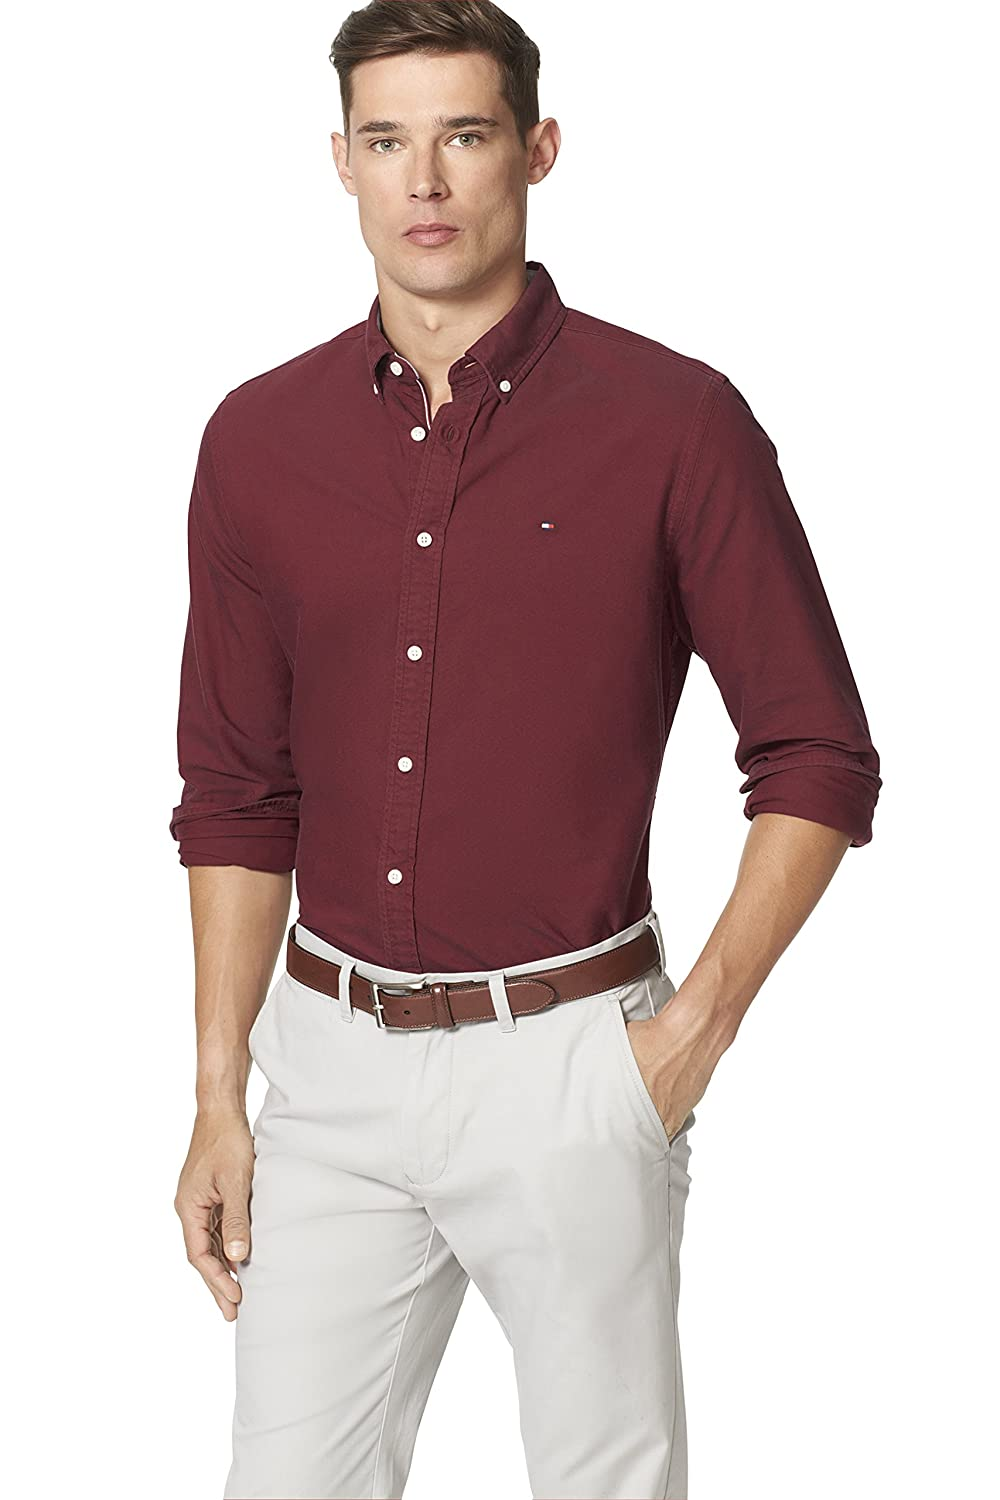 Tommy Hilfiger Men's New England Solid Oxford Shirt 8814408